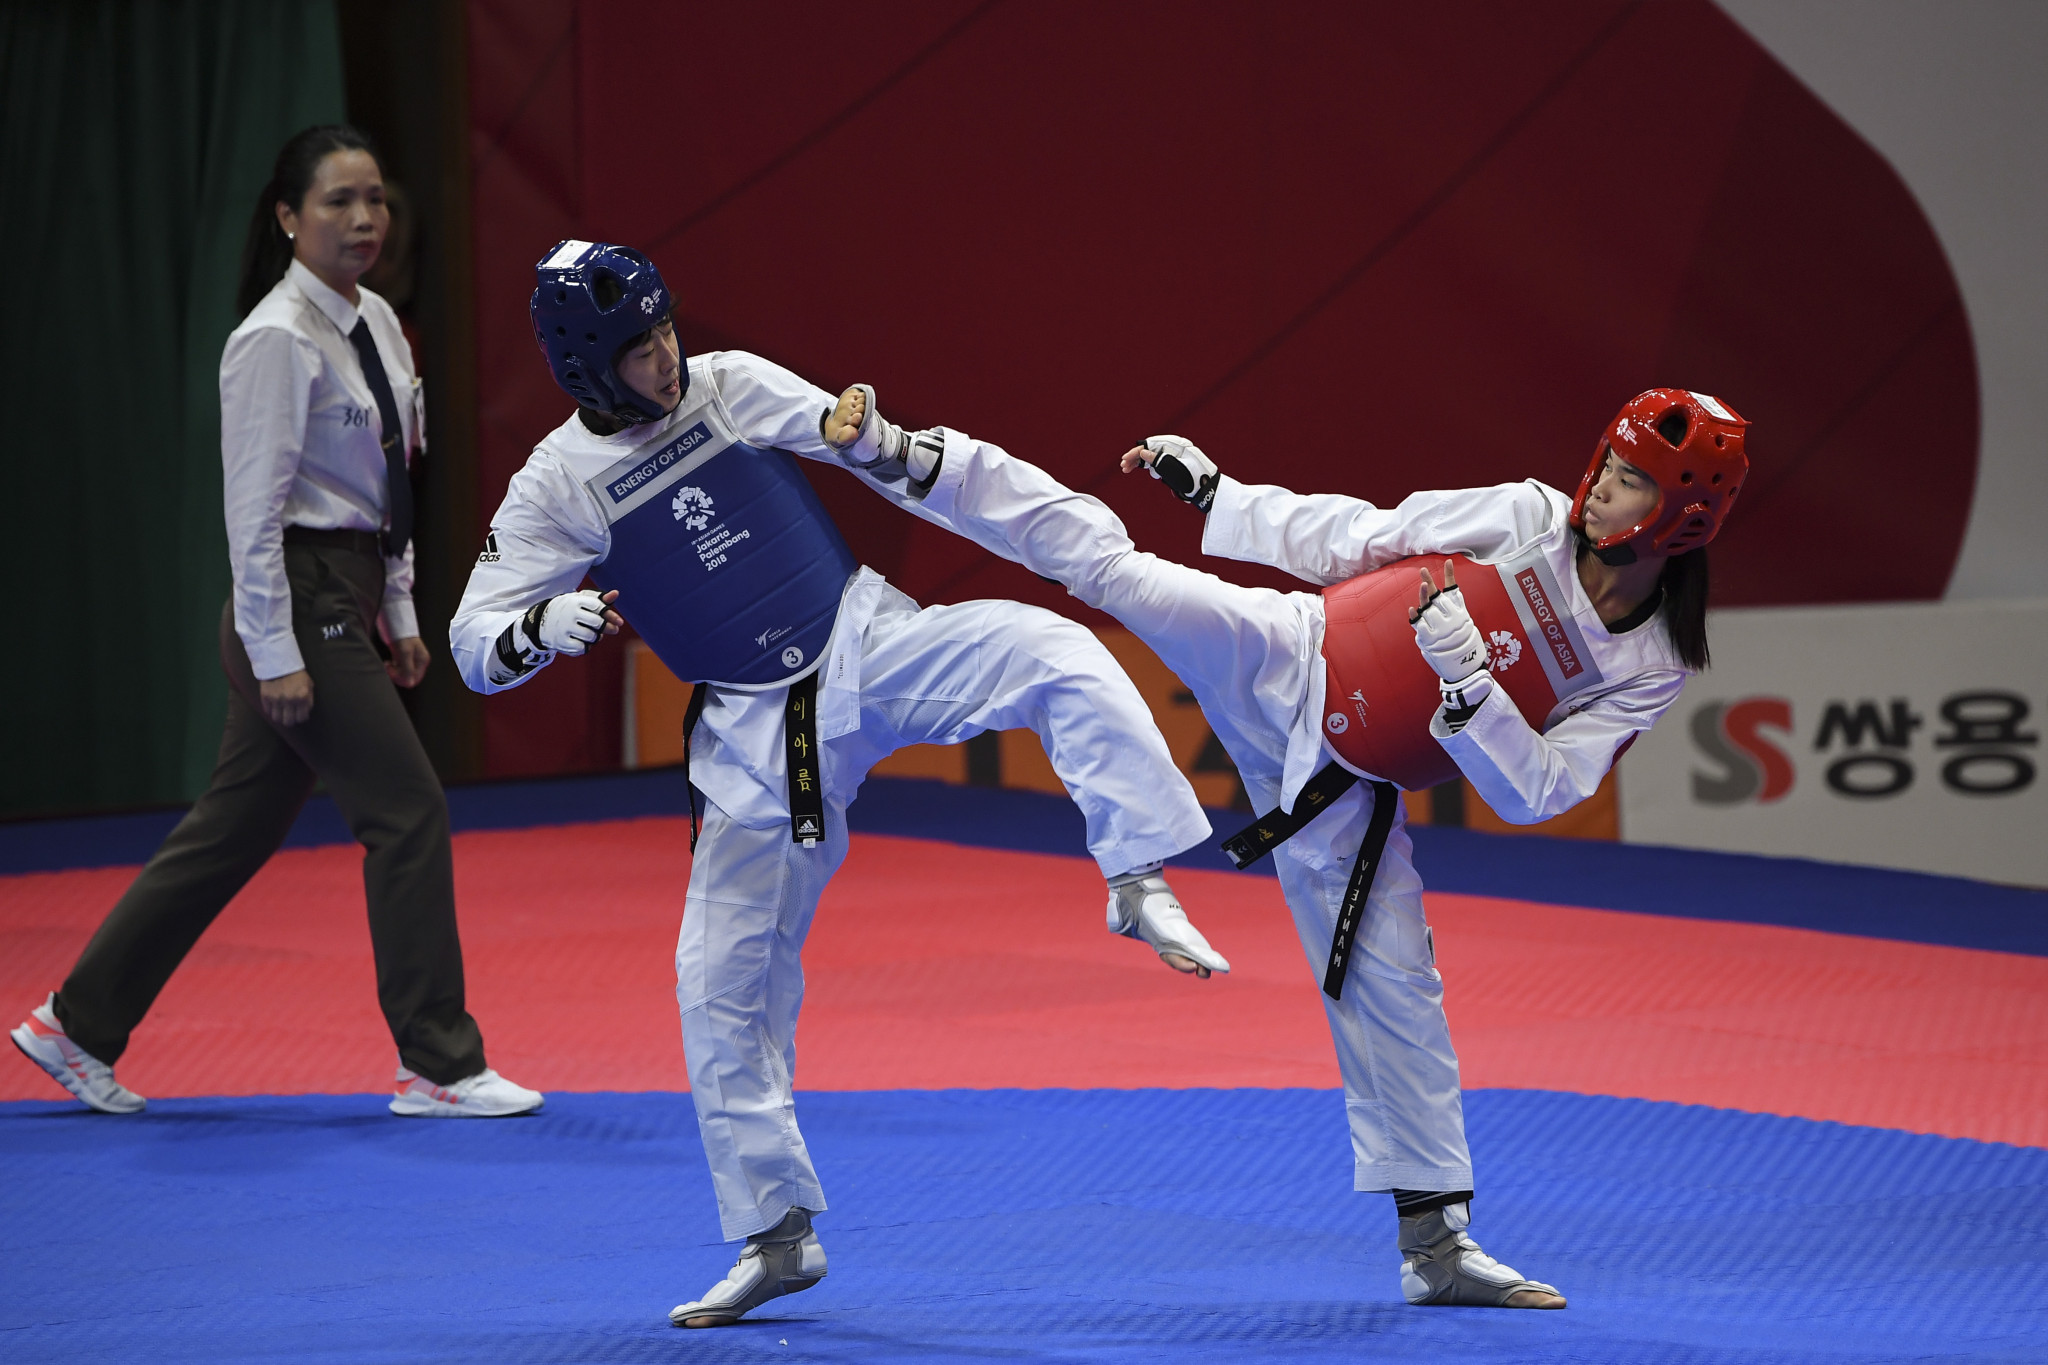 South Korea win four of eight golds on offer at the World Taekwondo Grand Prix Final